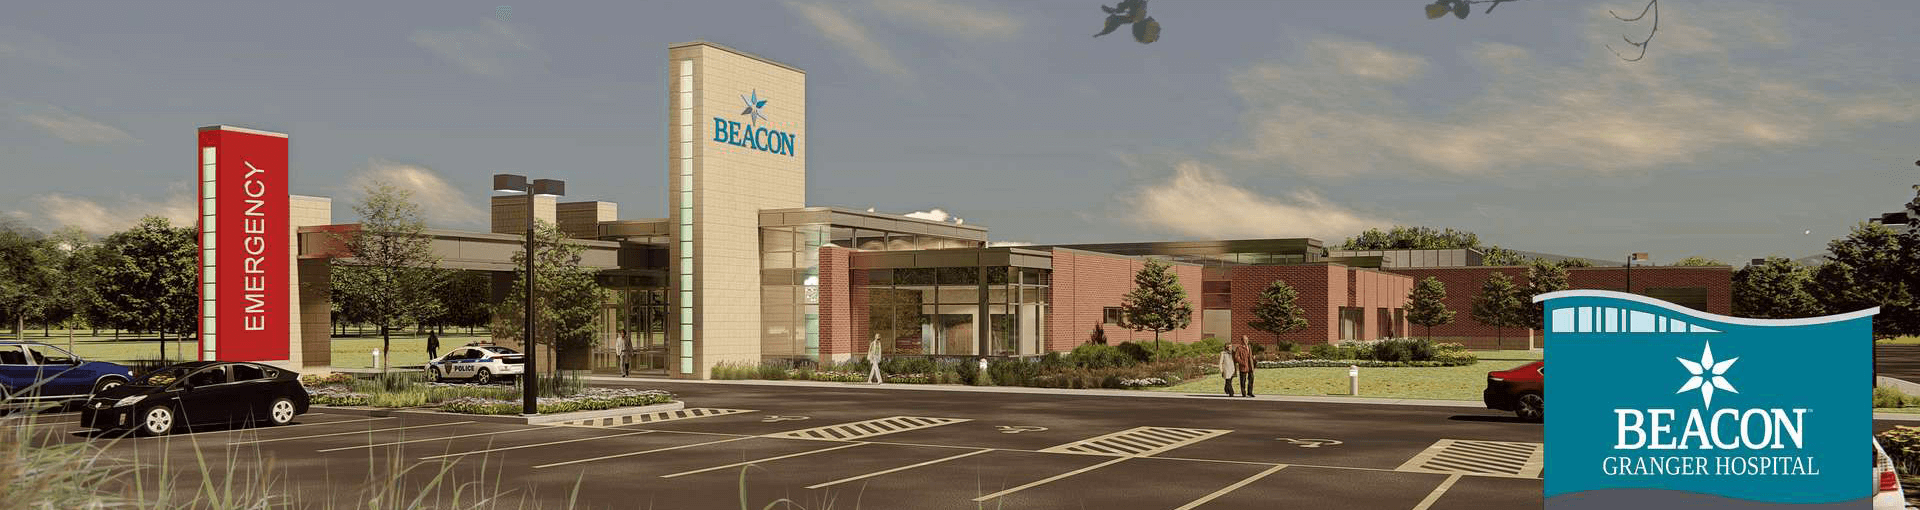 Beacon Granger Hospital Rendering